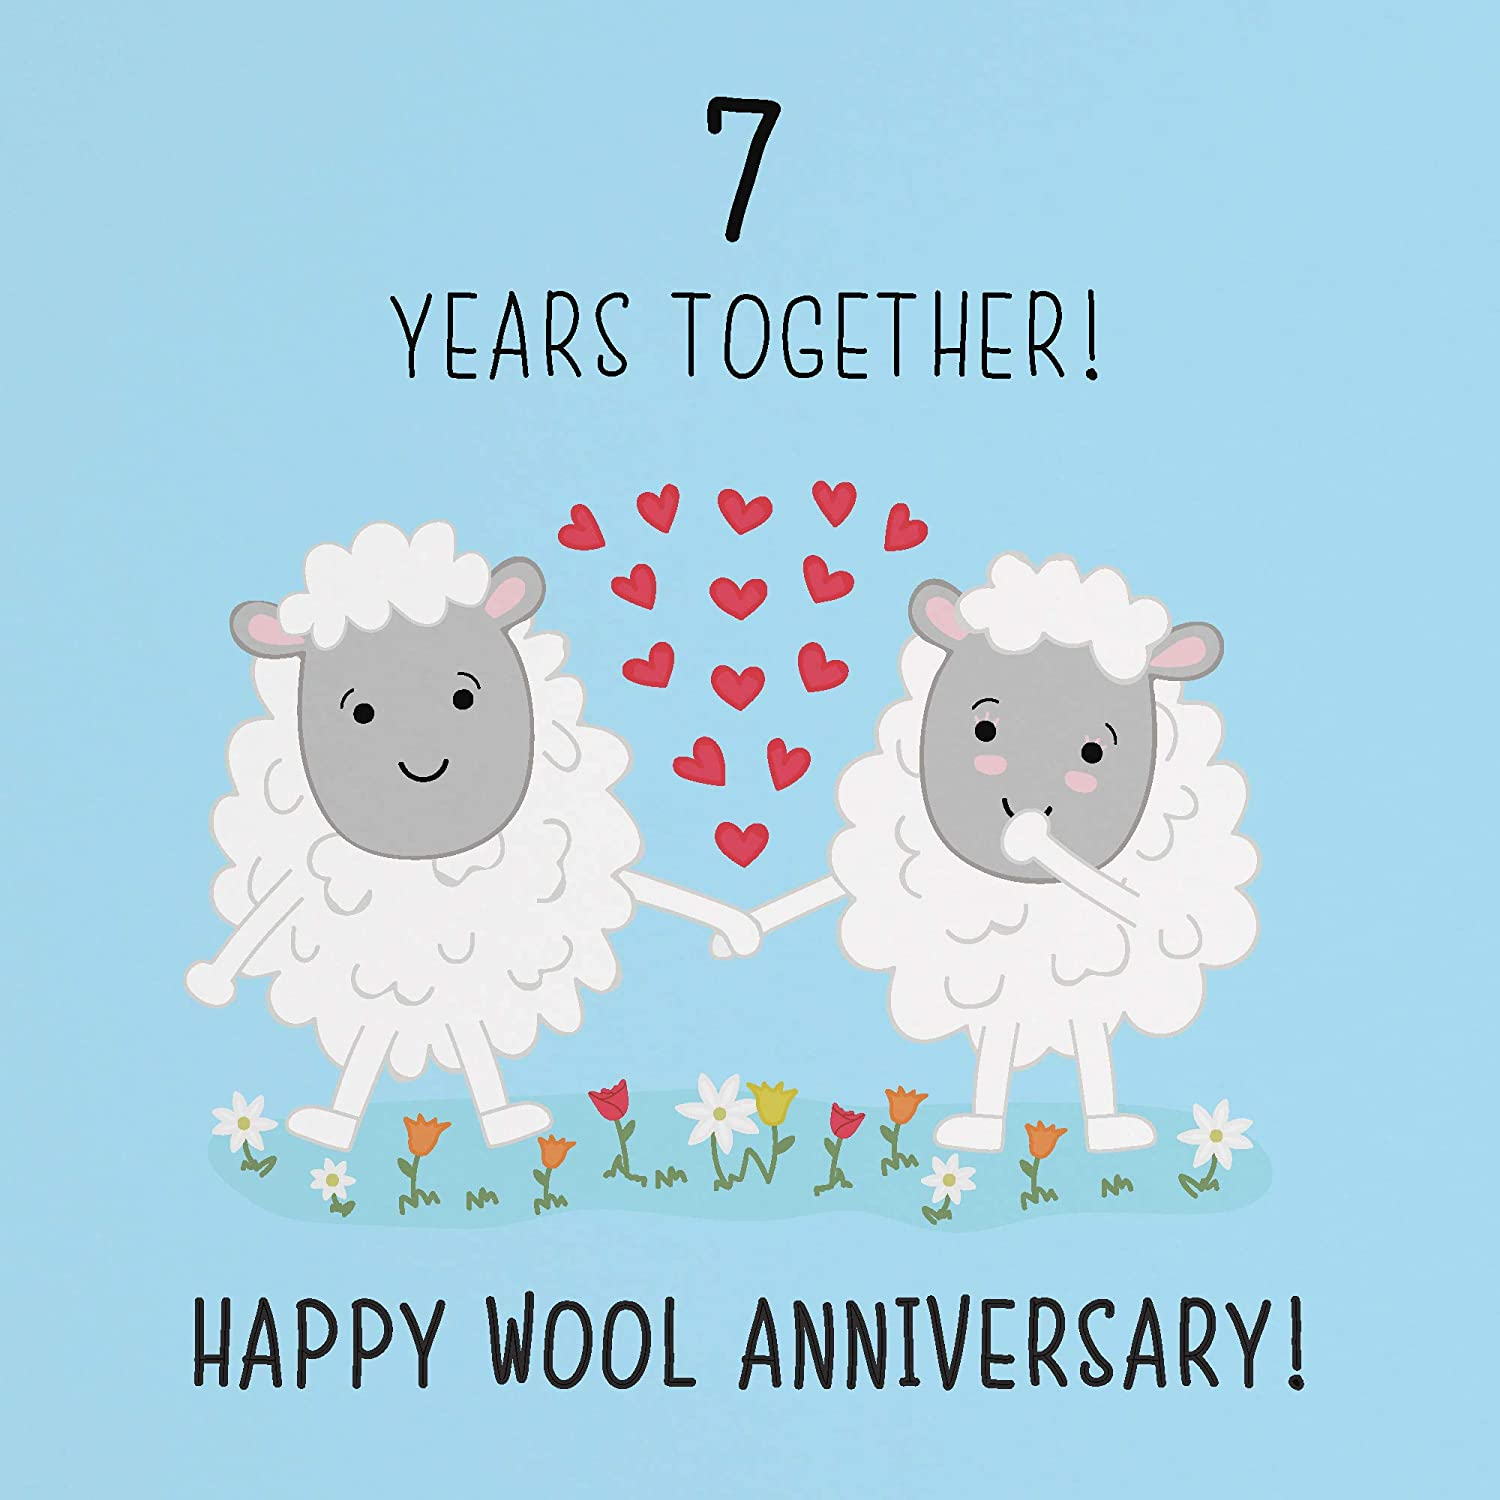 8th Wedding Anniversary Card - Wool Anniversary - Iconic Collection